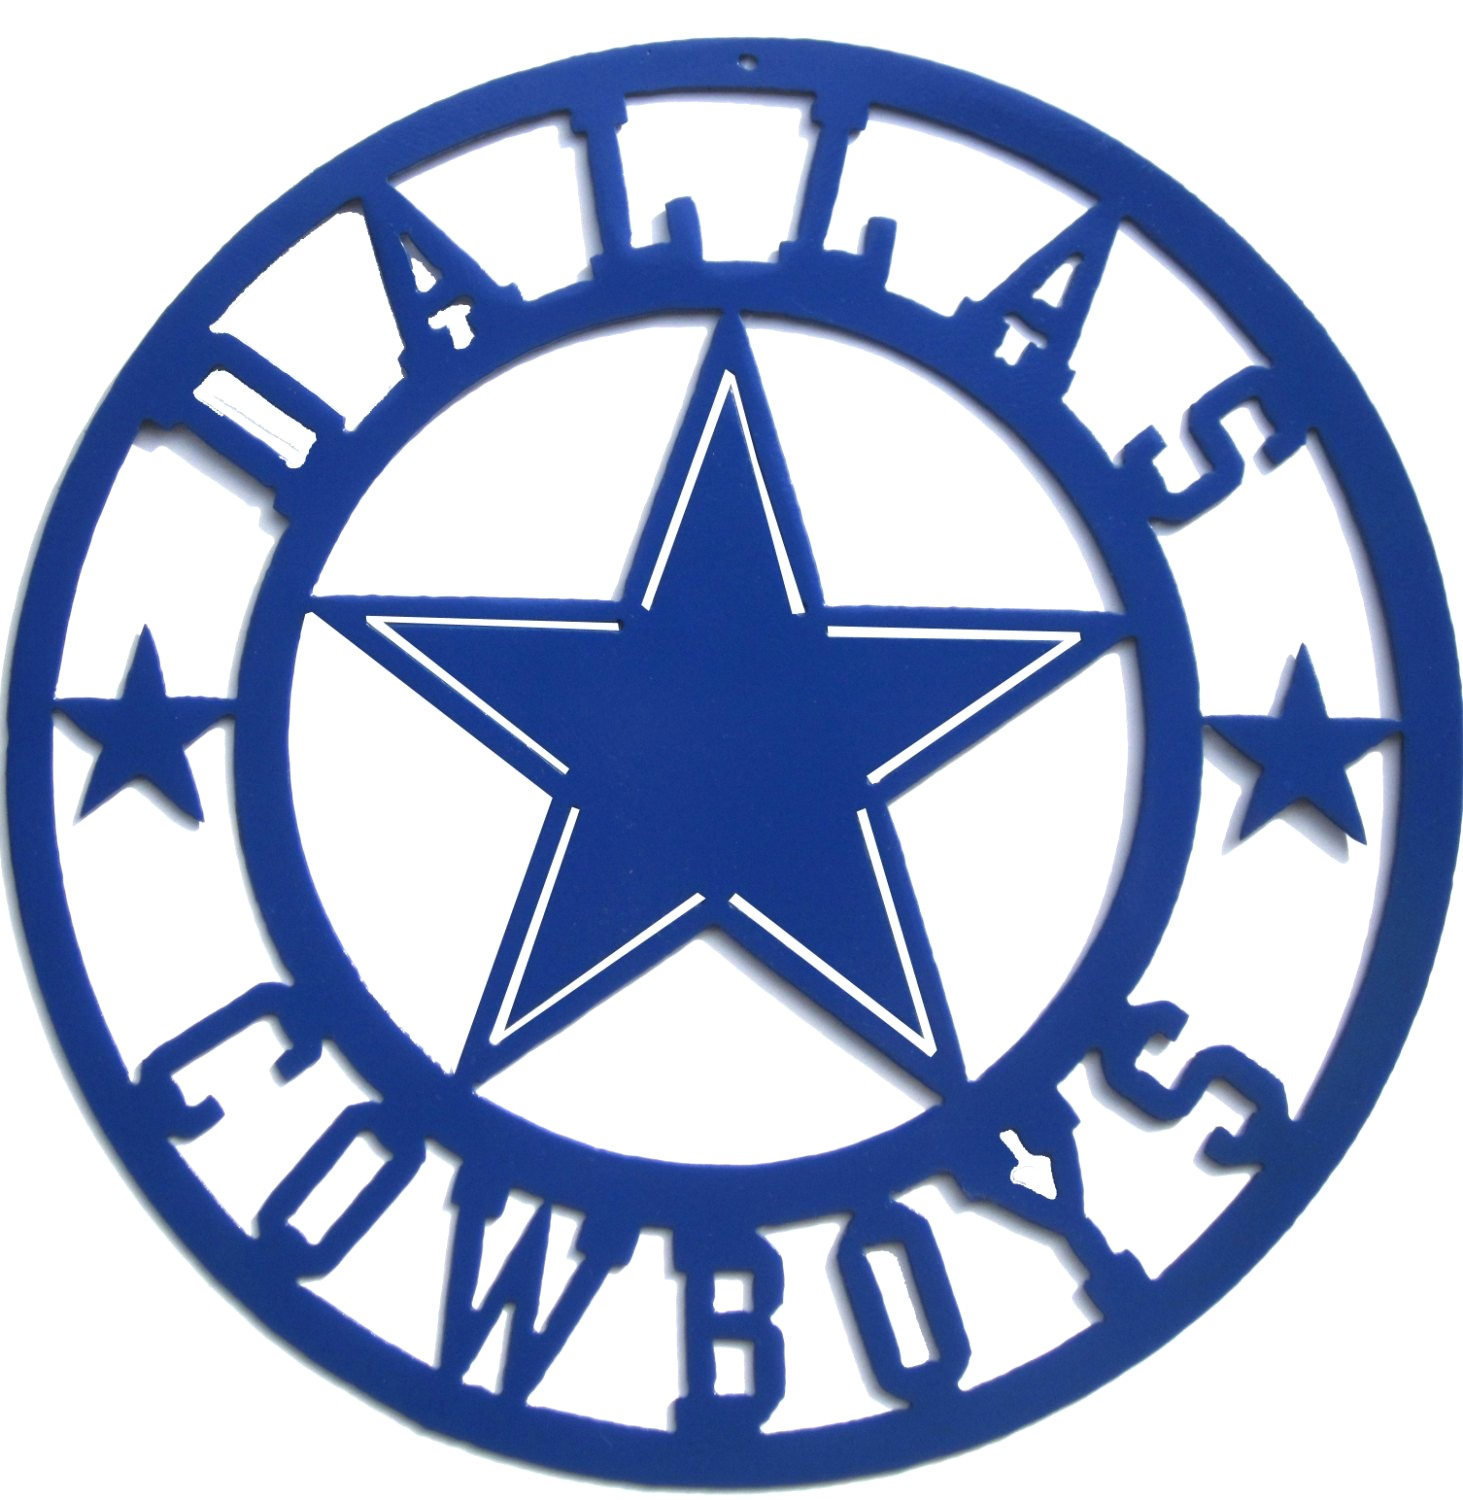 Dallas Cowboys Clipart 11.